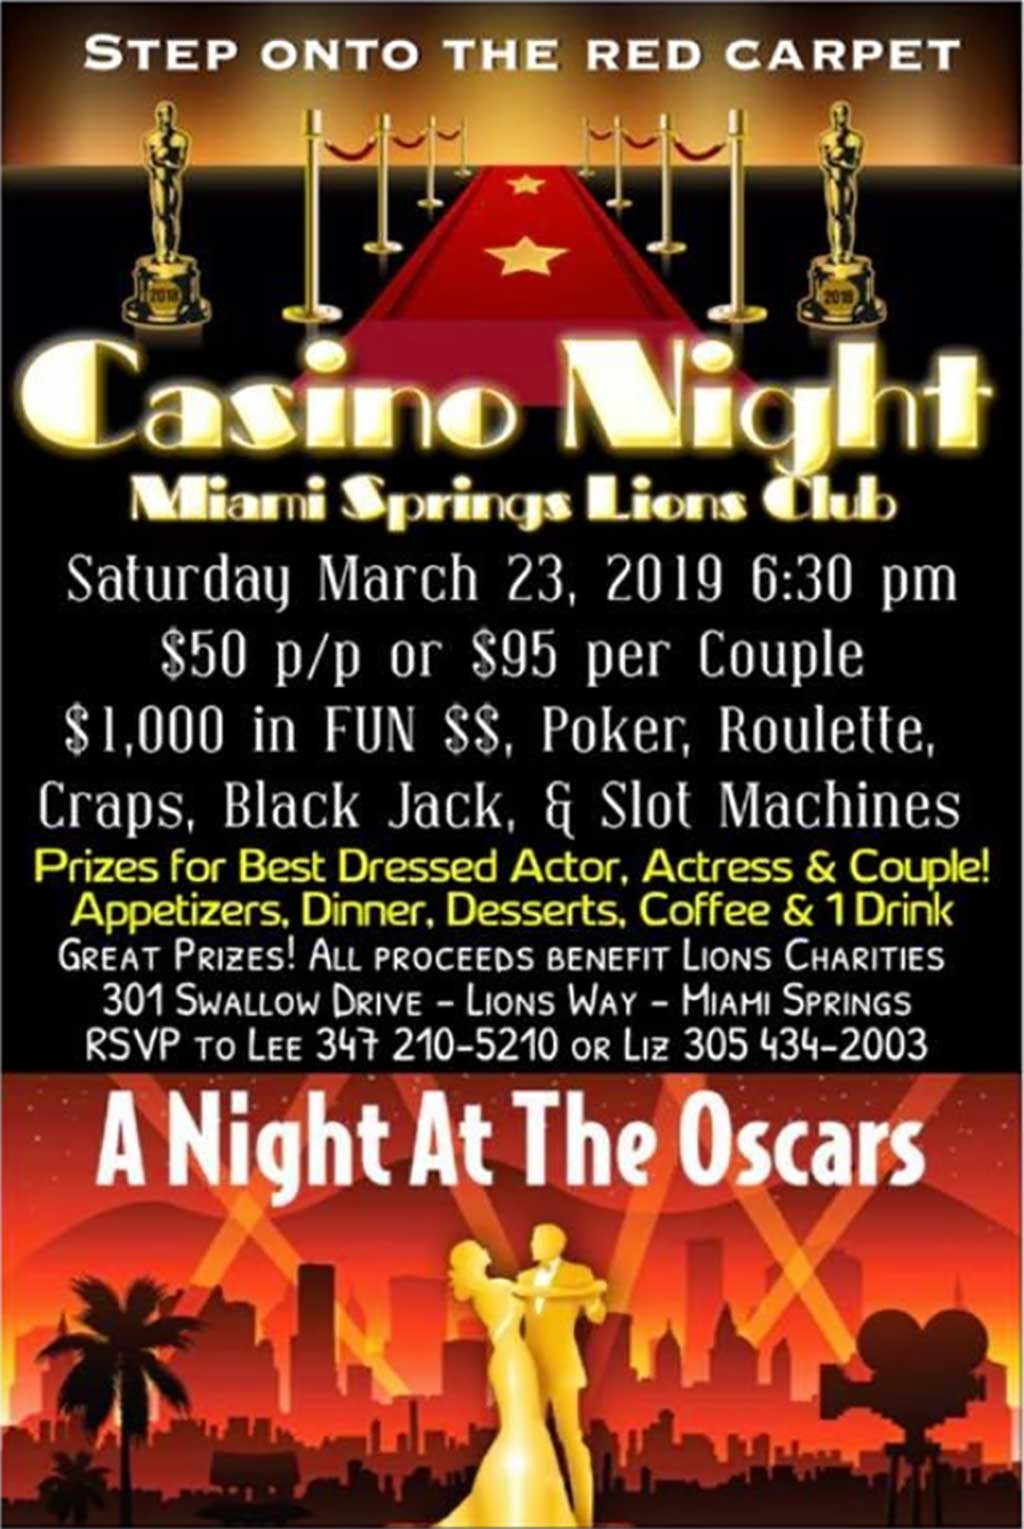 Casino Night at the Lions Club - MiamiSprings com | Miami